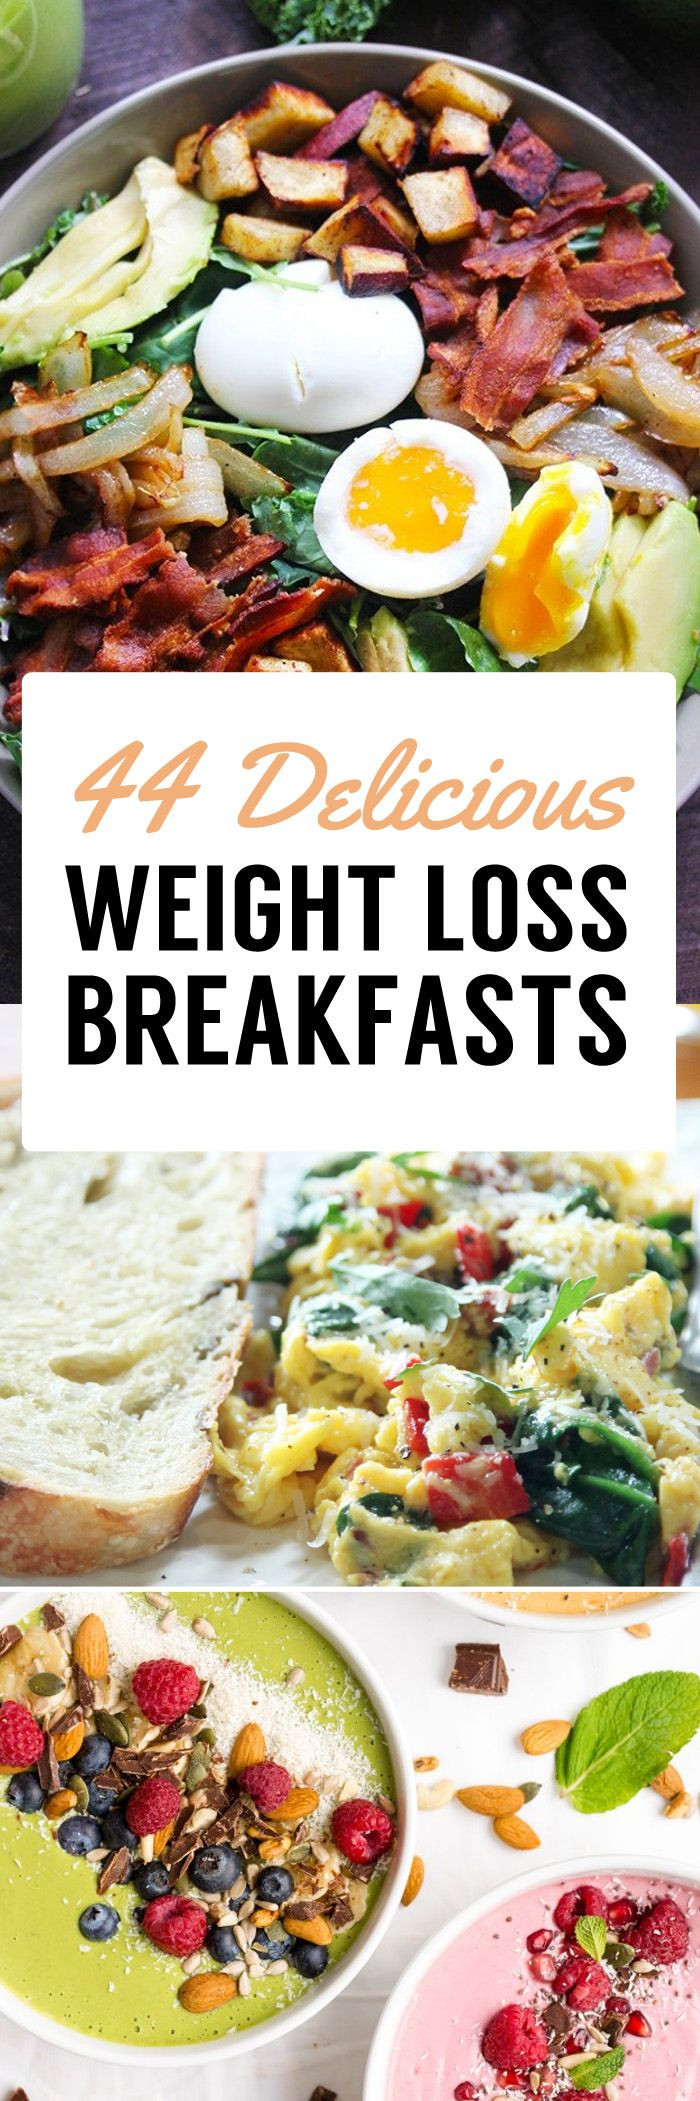 Healthy Breakfast For Weight Loss  The 25 best Weight loss meals ideas on Pinterest